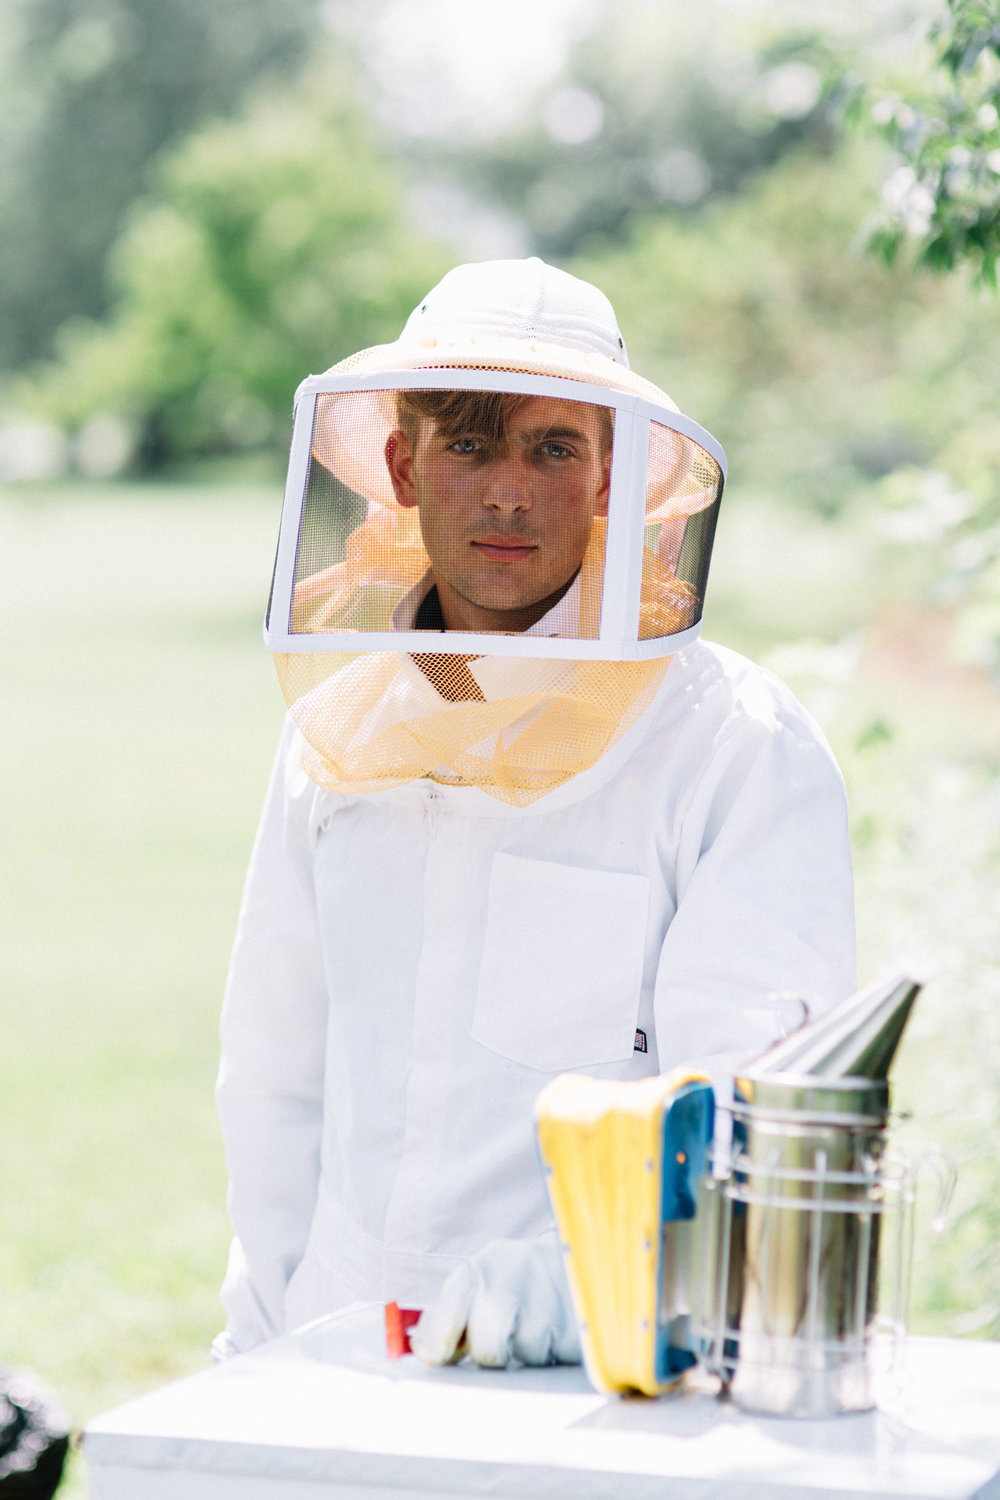 Luke Hearon, 20, stands with one of two of his beehives in his yard in Olentangy, Ohio, a rural suburb of Columbus. Hearon is a beekeeper and passionate student of entomology at The Ohio State University.